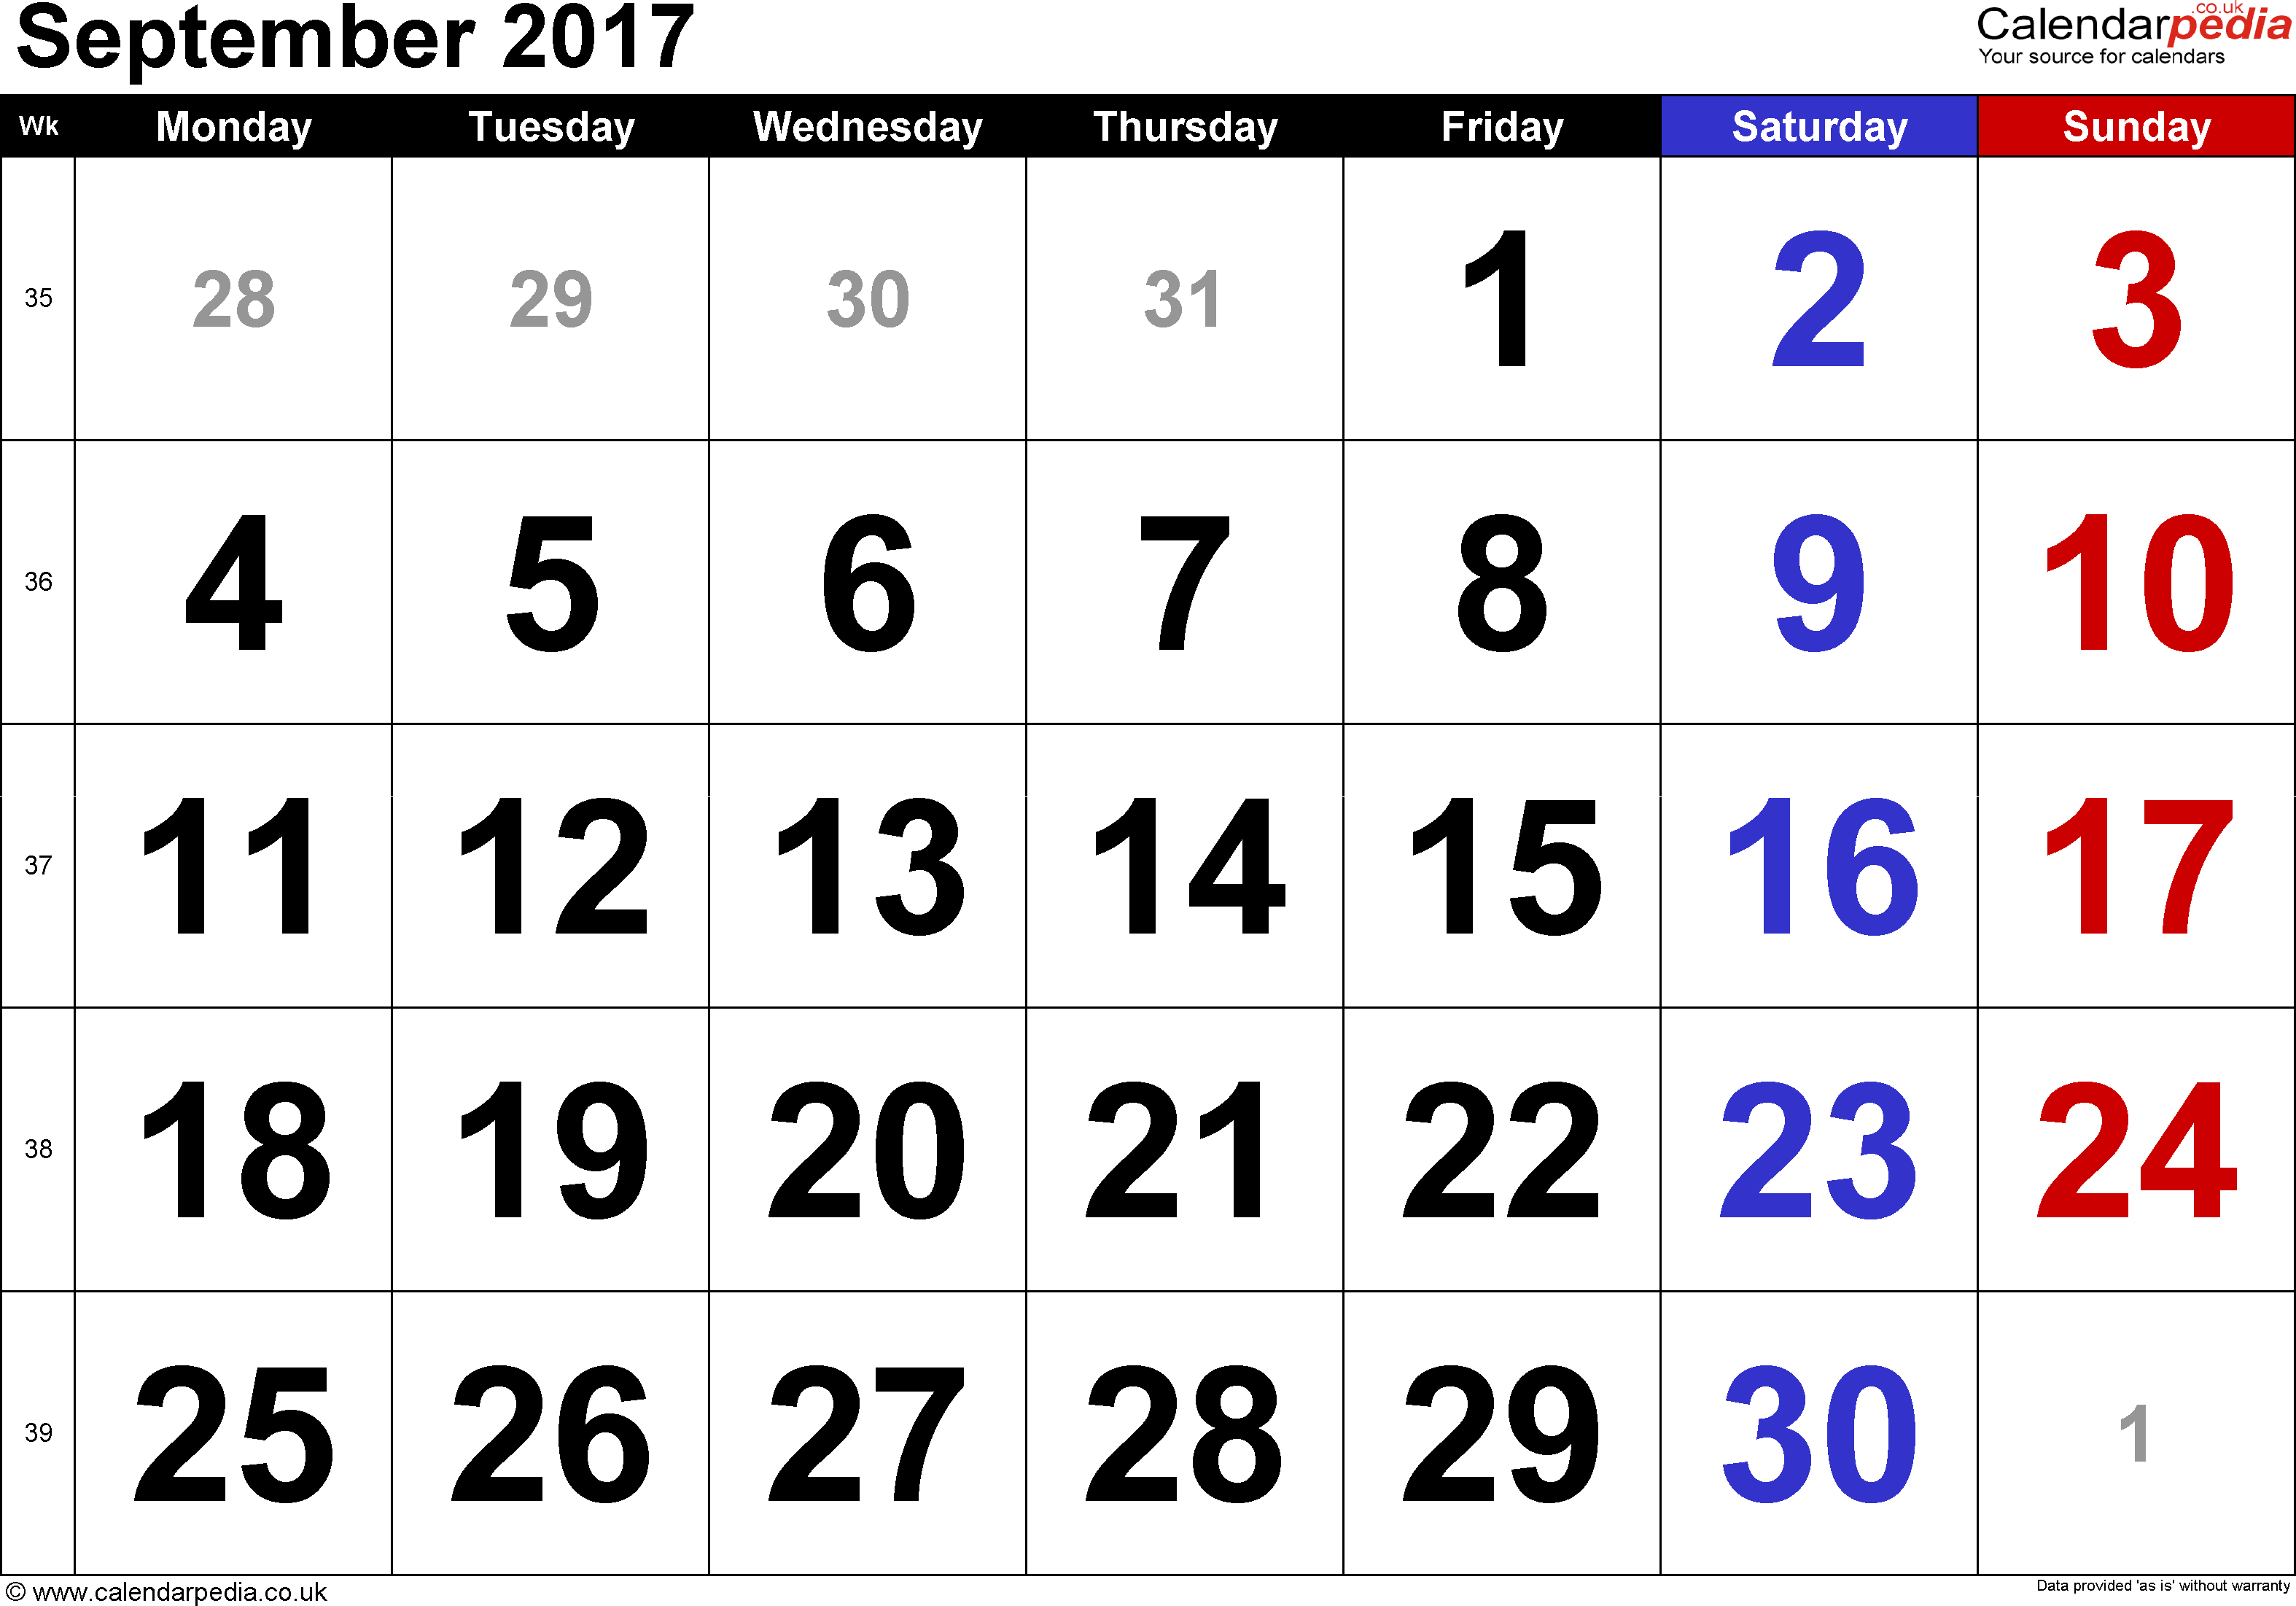 desk-DOC-PDF-2018-school-calendar-template-teachers